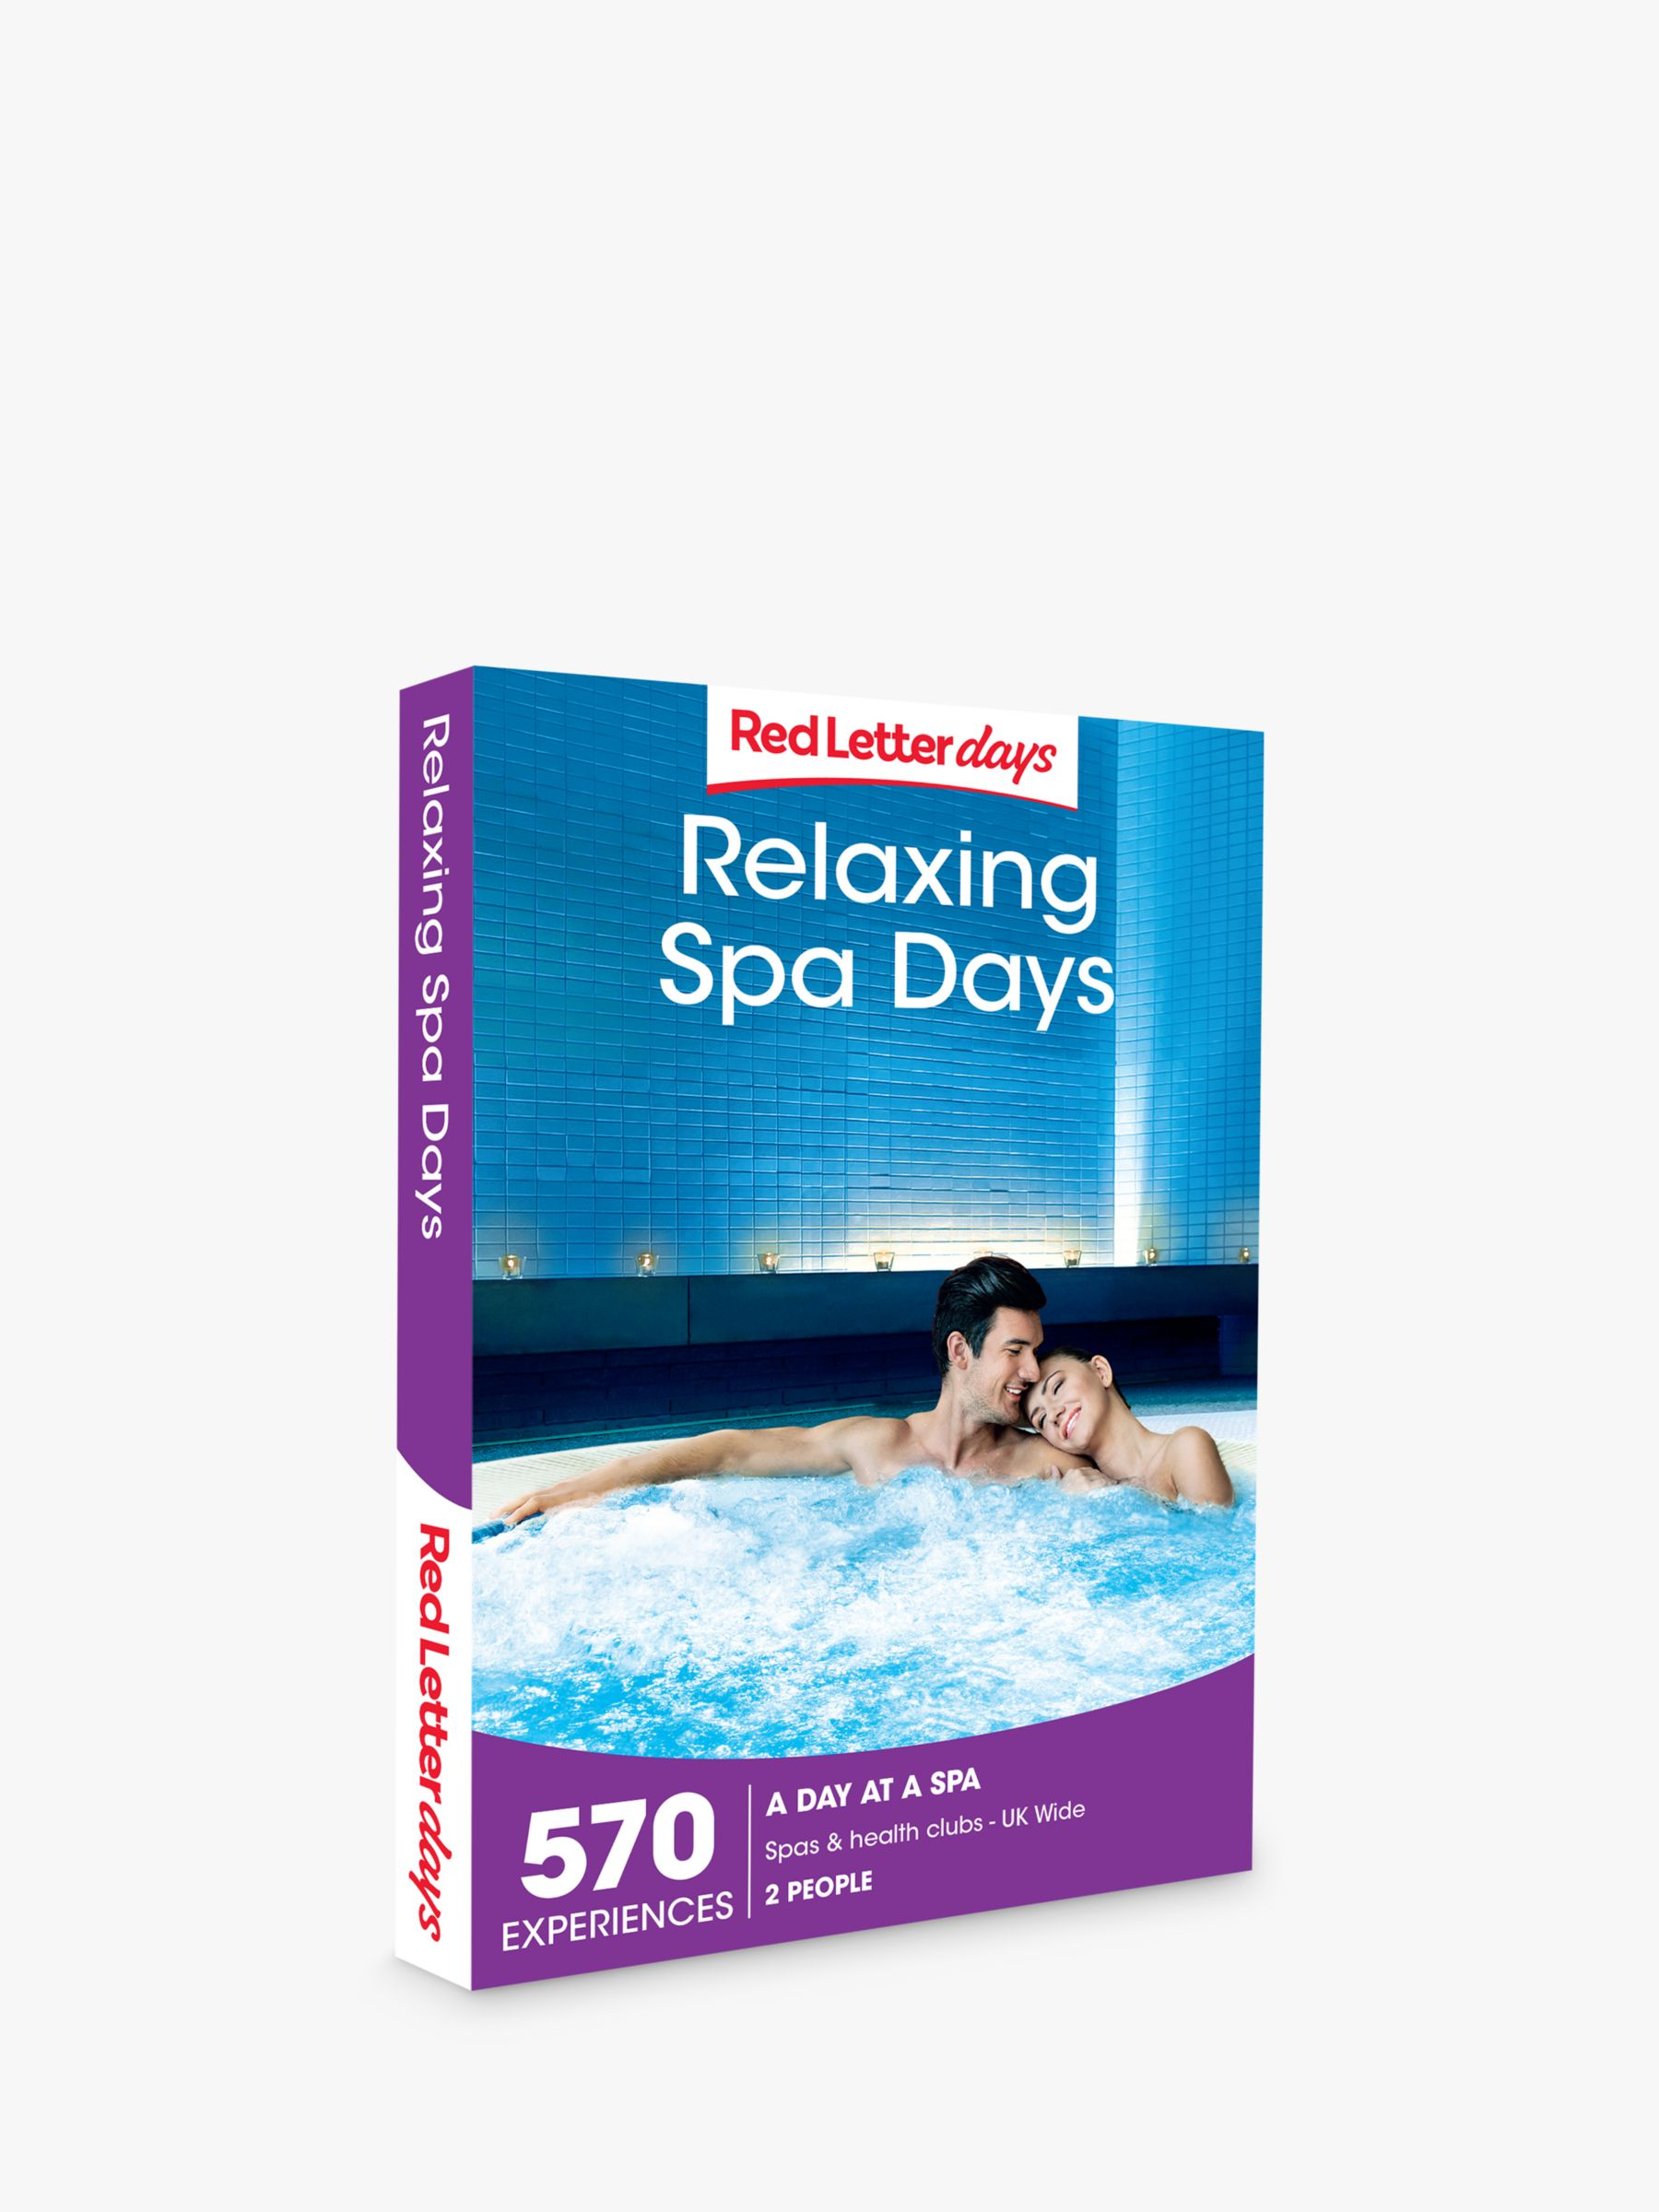 Red Letter Days Red Letter Days Relaxing Spa Days Gift Experience